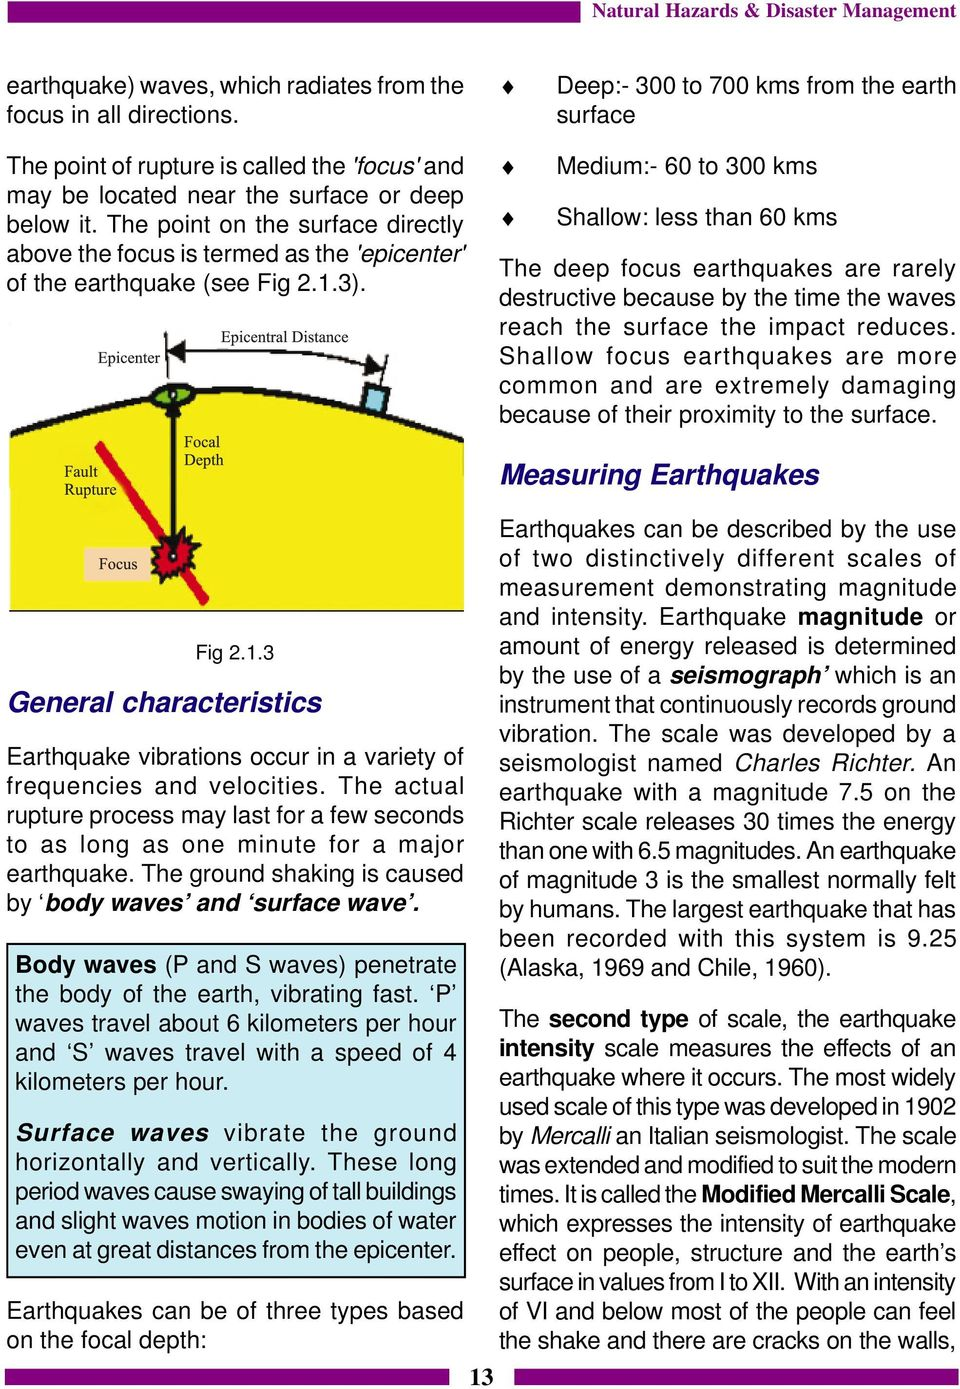 The point on the surface directly above the focus is termed as the 'epicenter' of the earthquake (see Fig 2.1.3).